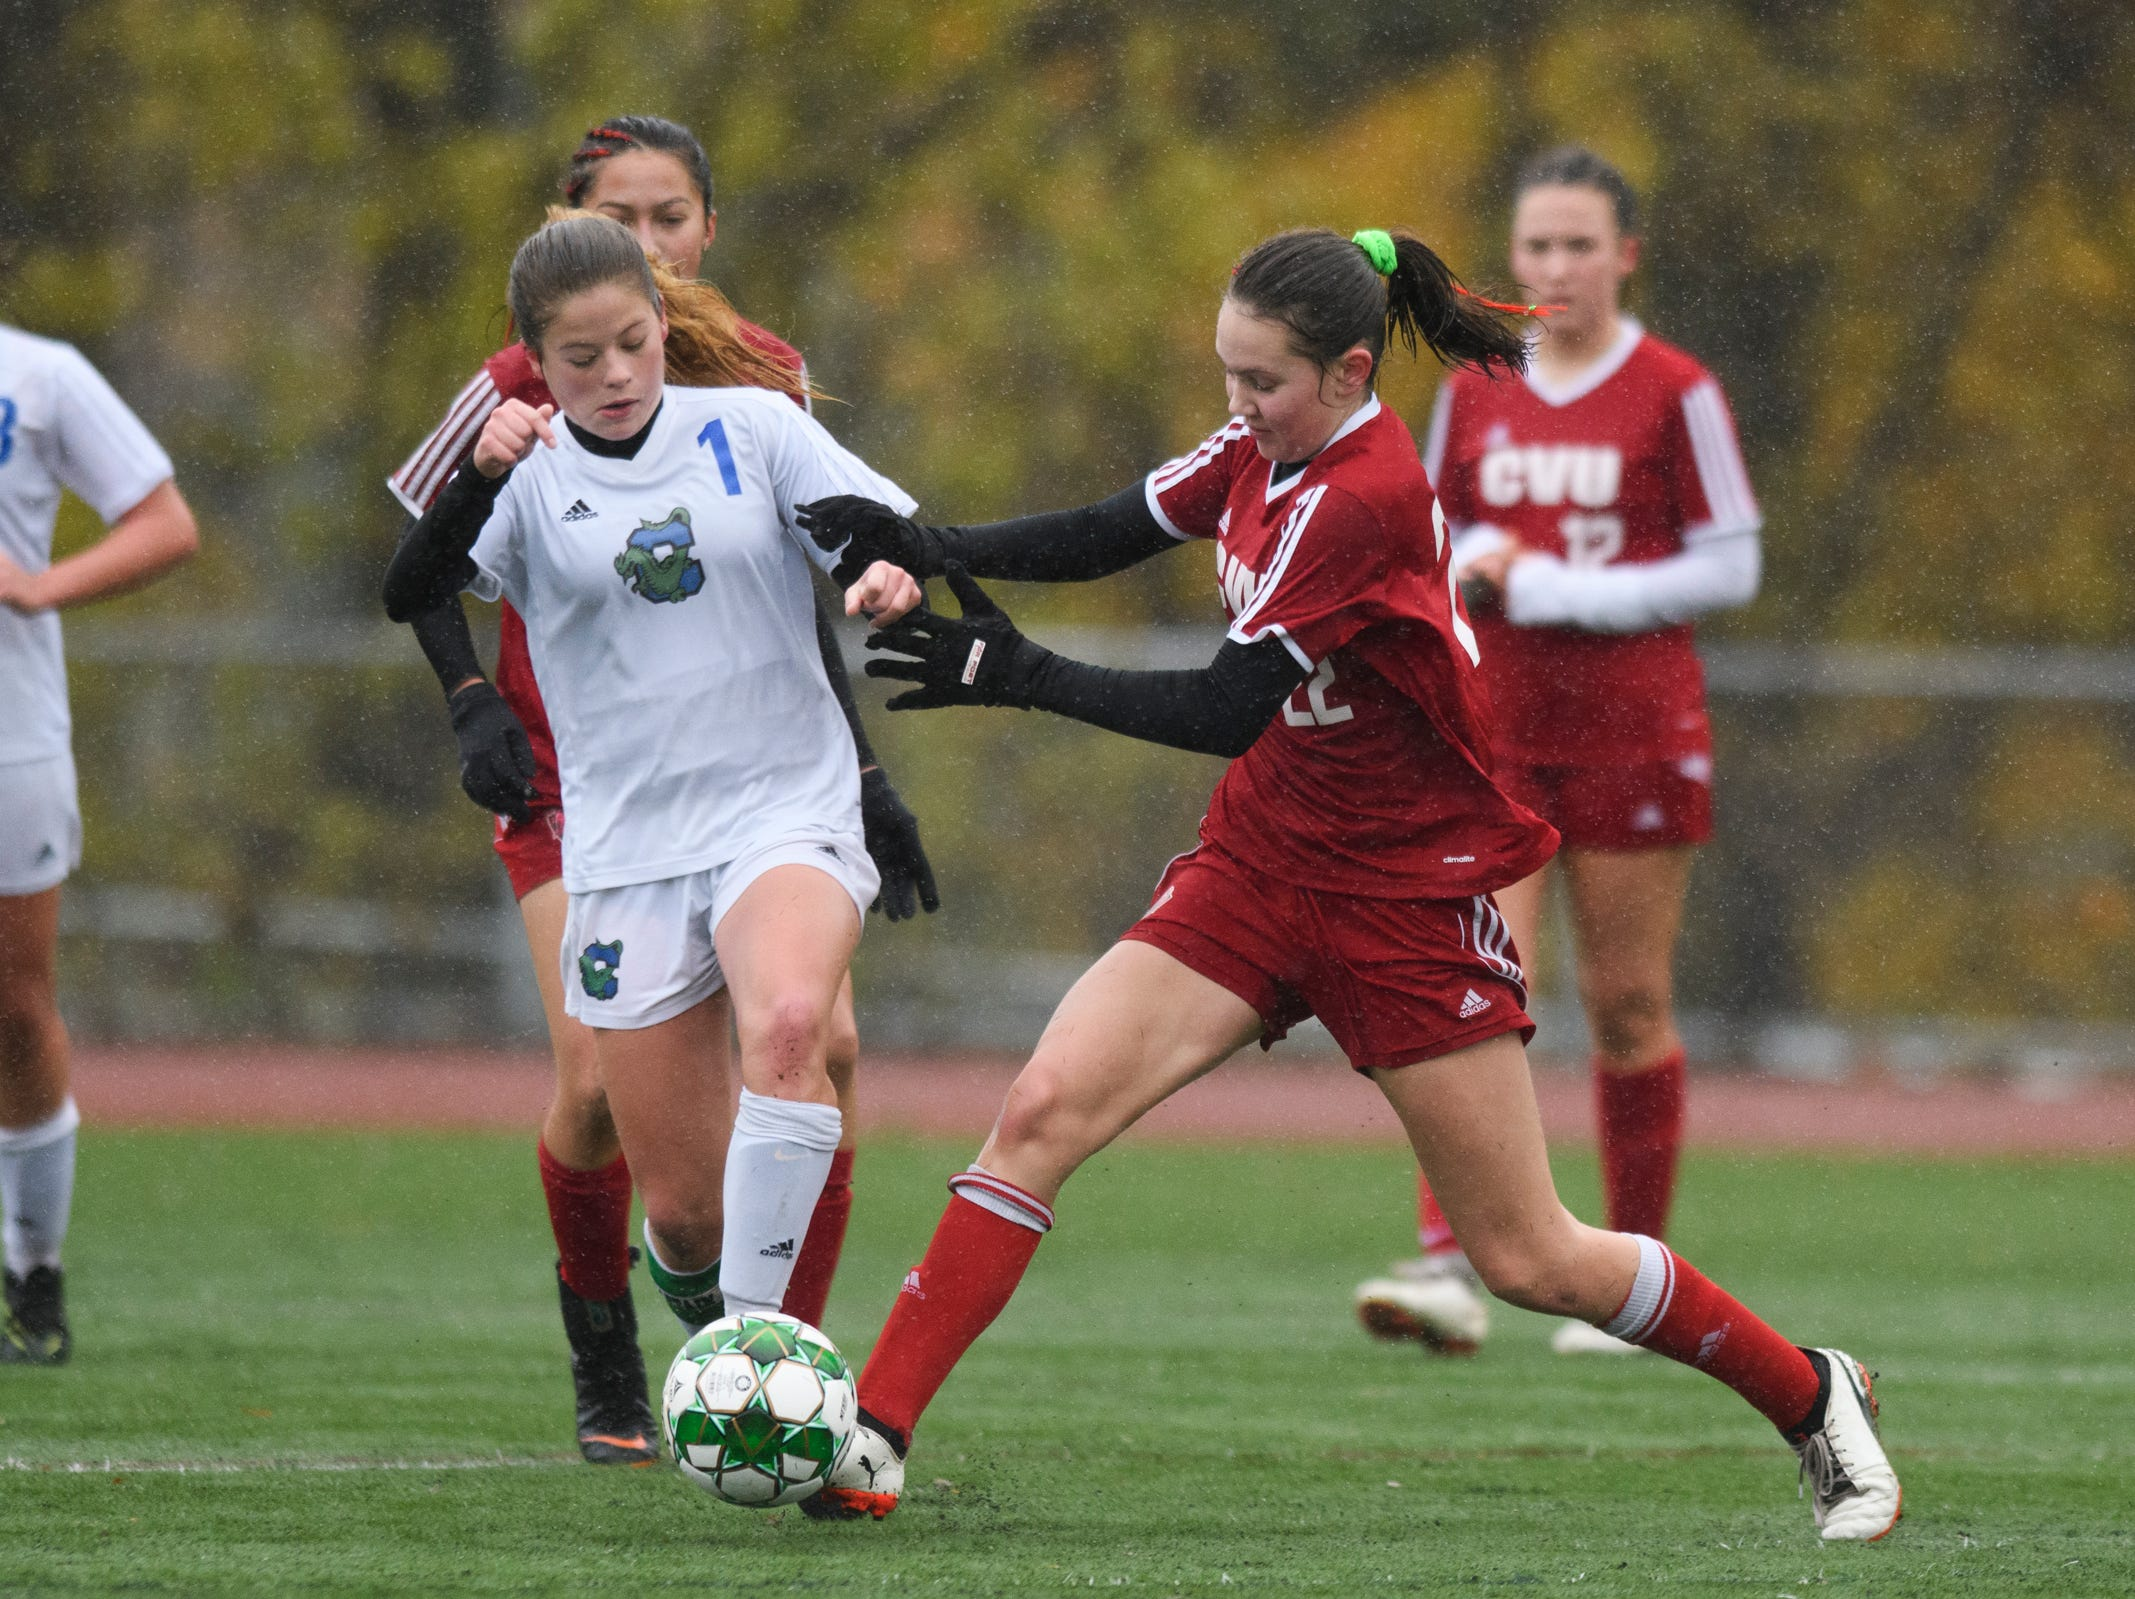 CVU's Josie Pecor (22) battles for the ball with Colchester's Madison Finelli (1) during the division I girls soccer championship game between the Colchester Lakers and the Champlain Valley Union Redhawks at Buck Hard Field on Saturday morning November 3, 2018 in Burlington.